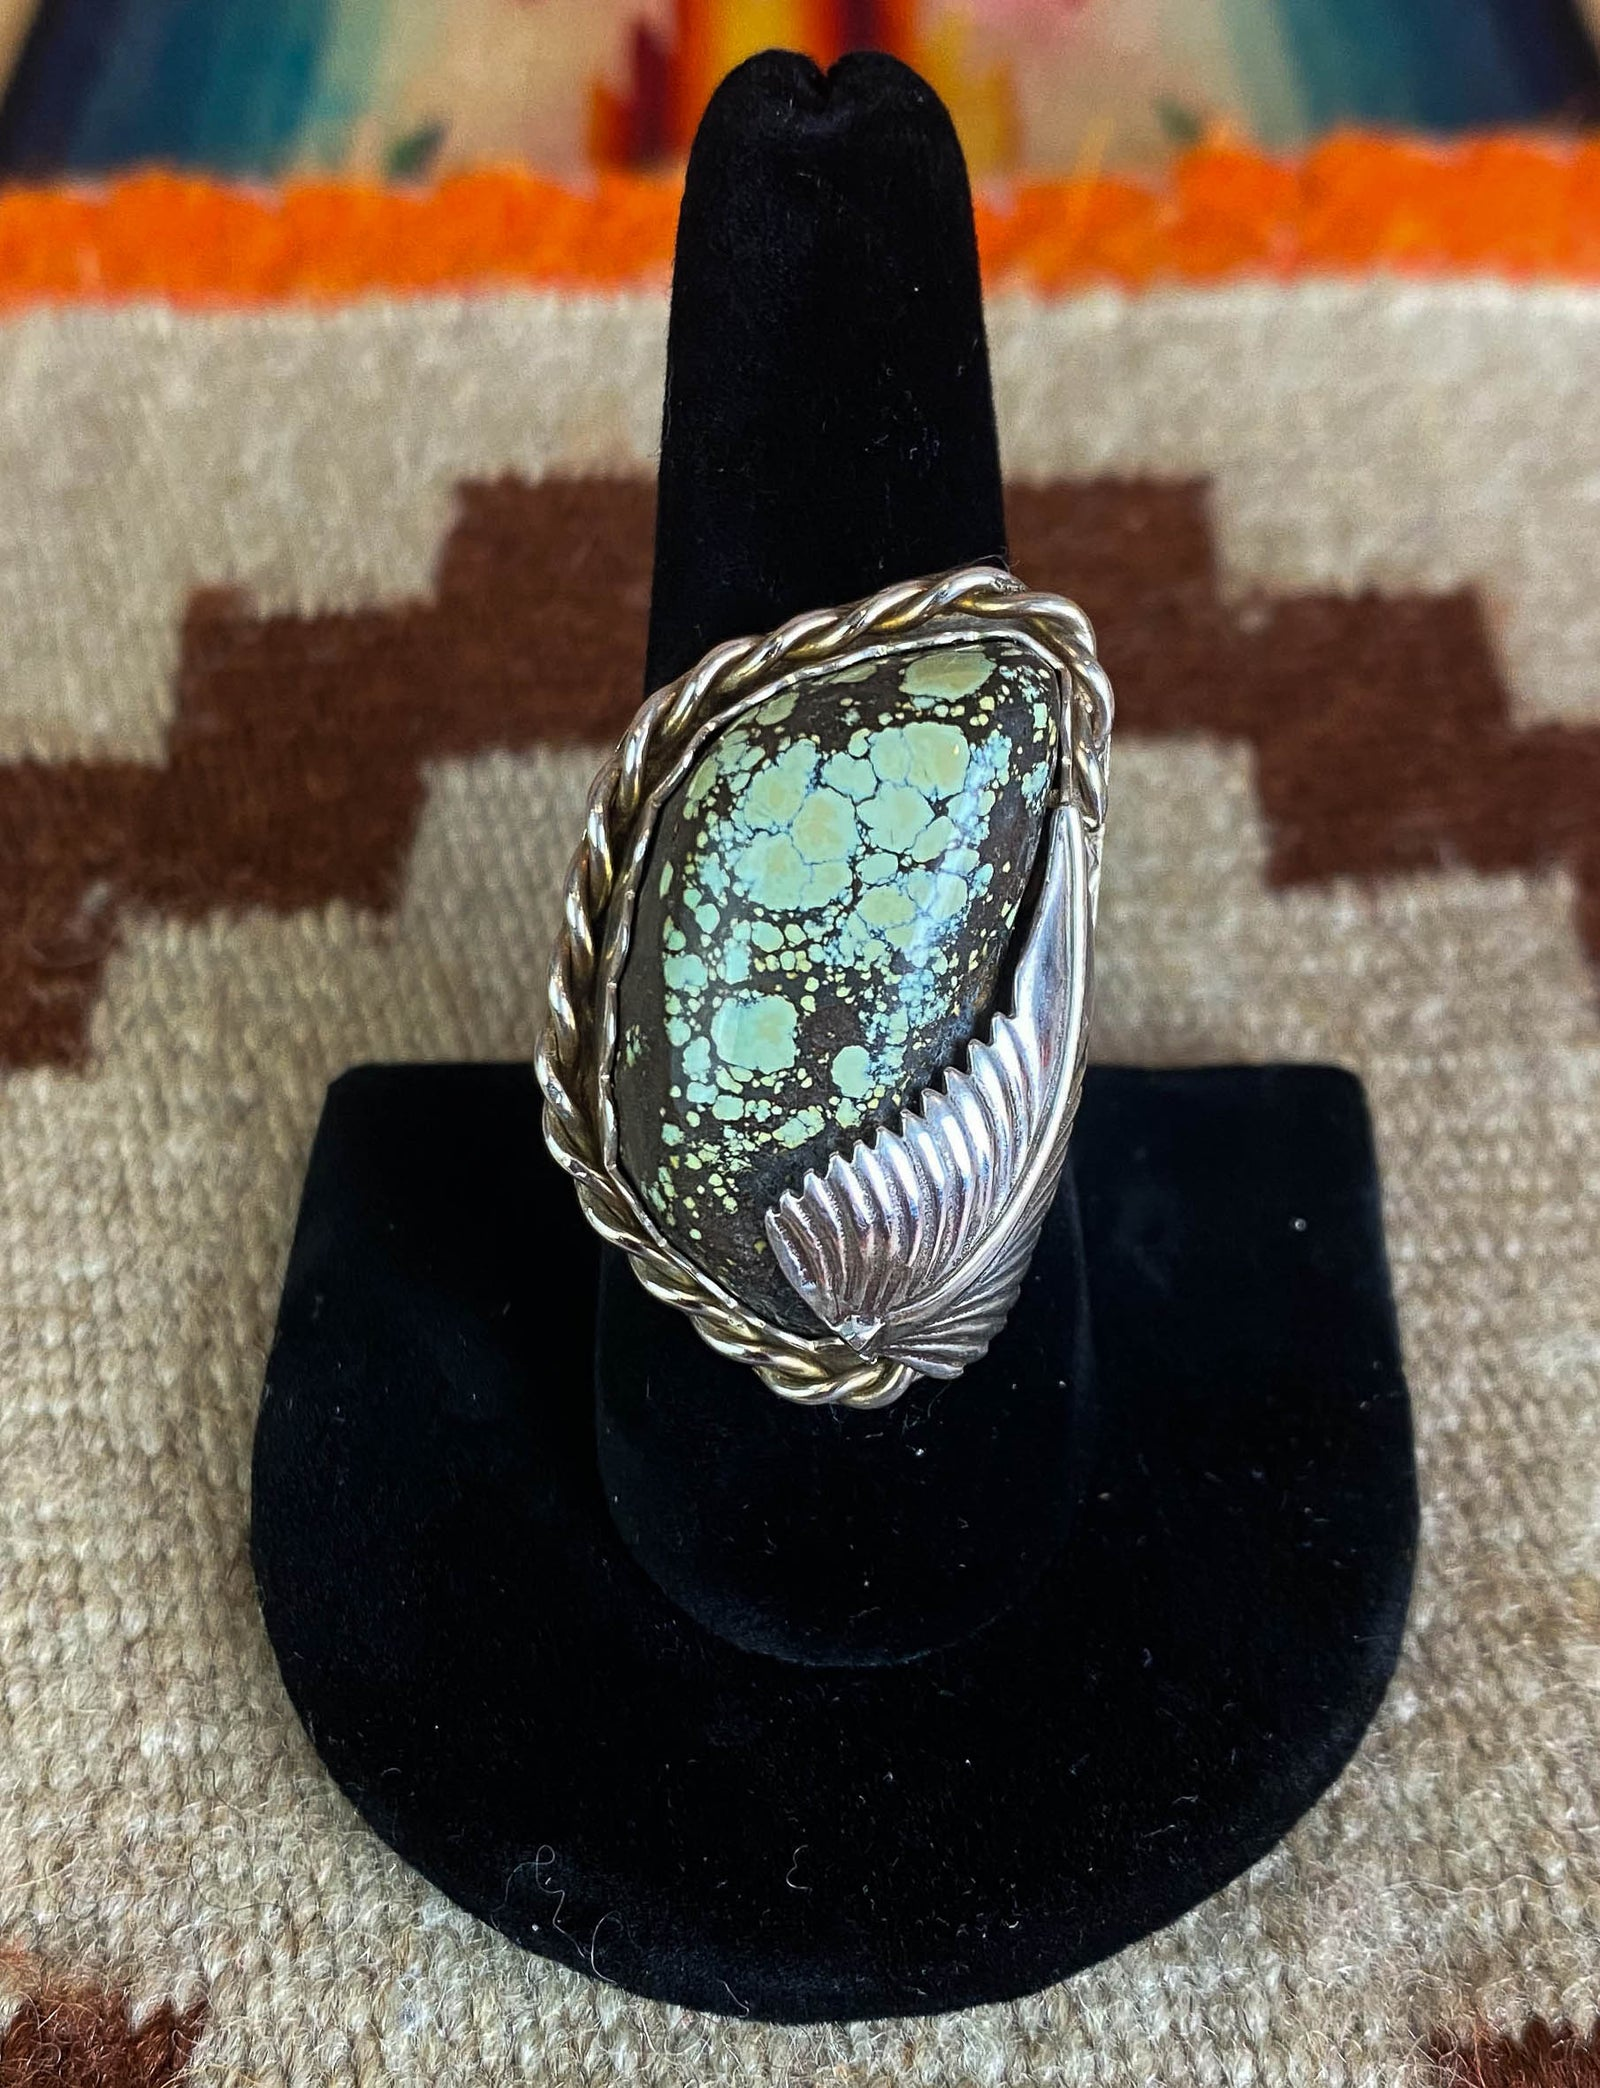 Vintage 70's Speckled Green Turquoise Ring Sterling Silver Engraved Feather Size 9